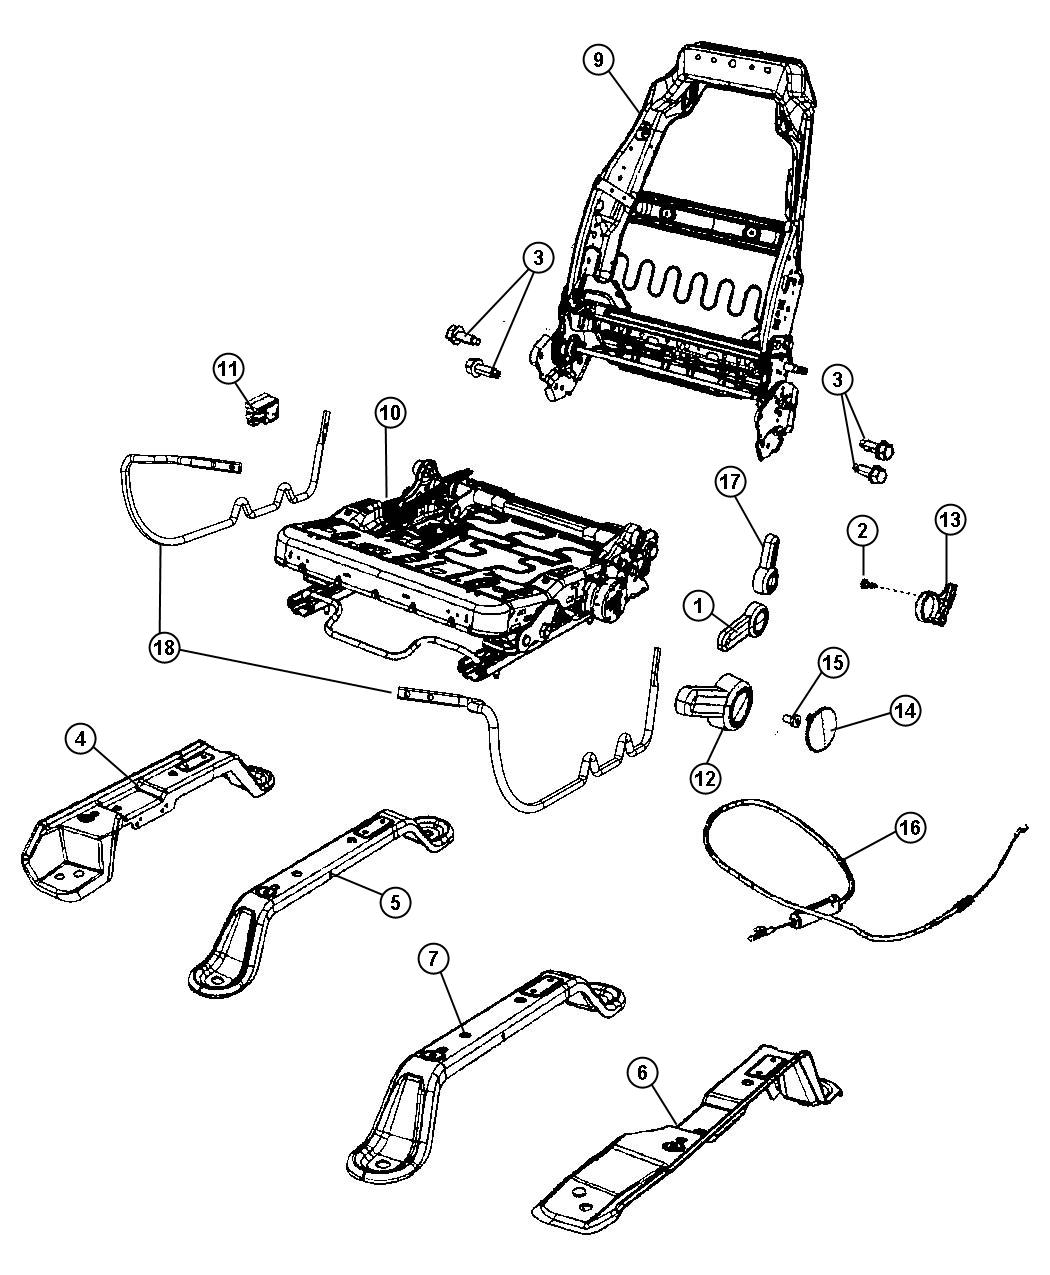 1996 dodge ram parts diagram  dodge  auto wiring diagram